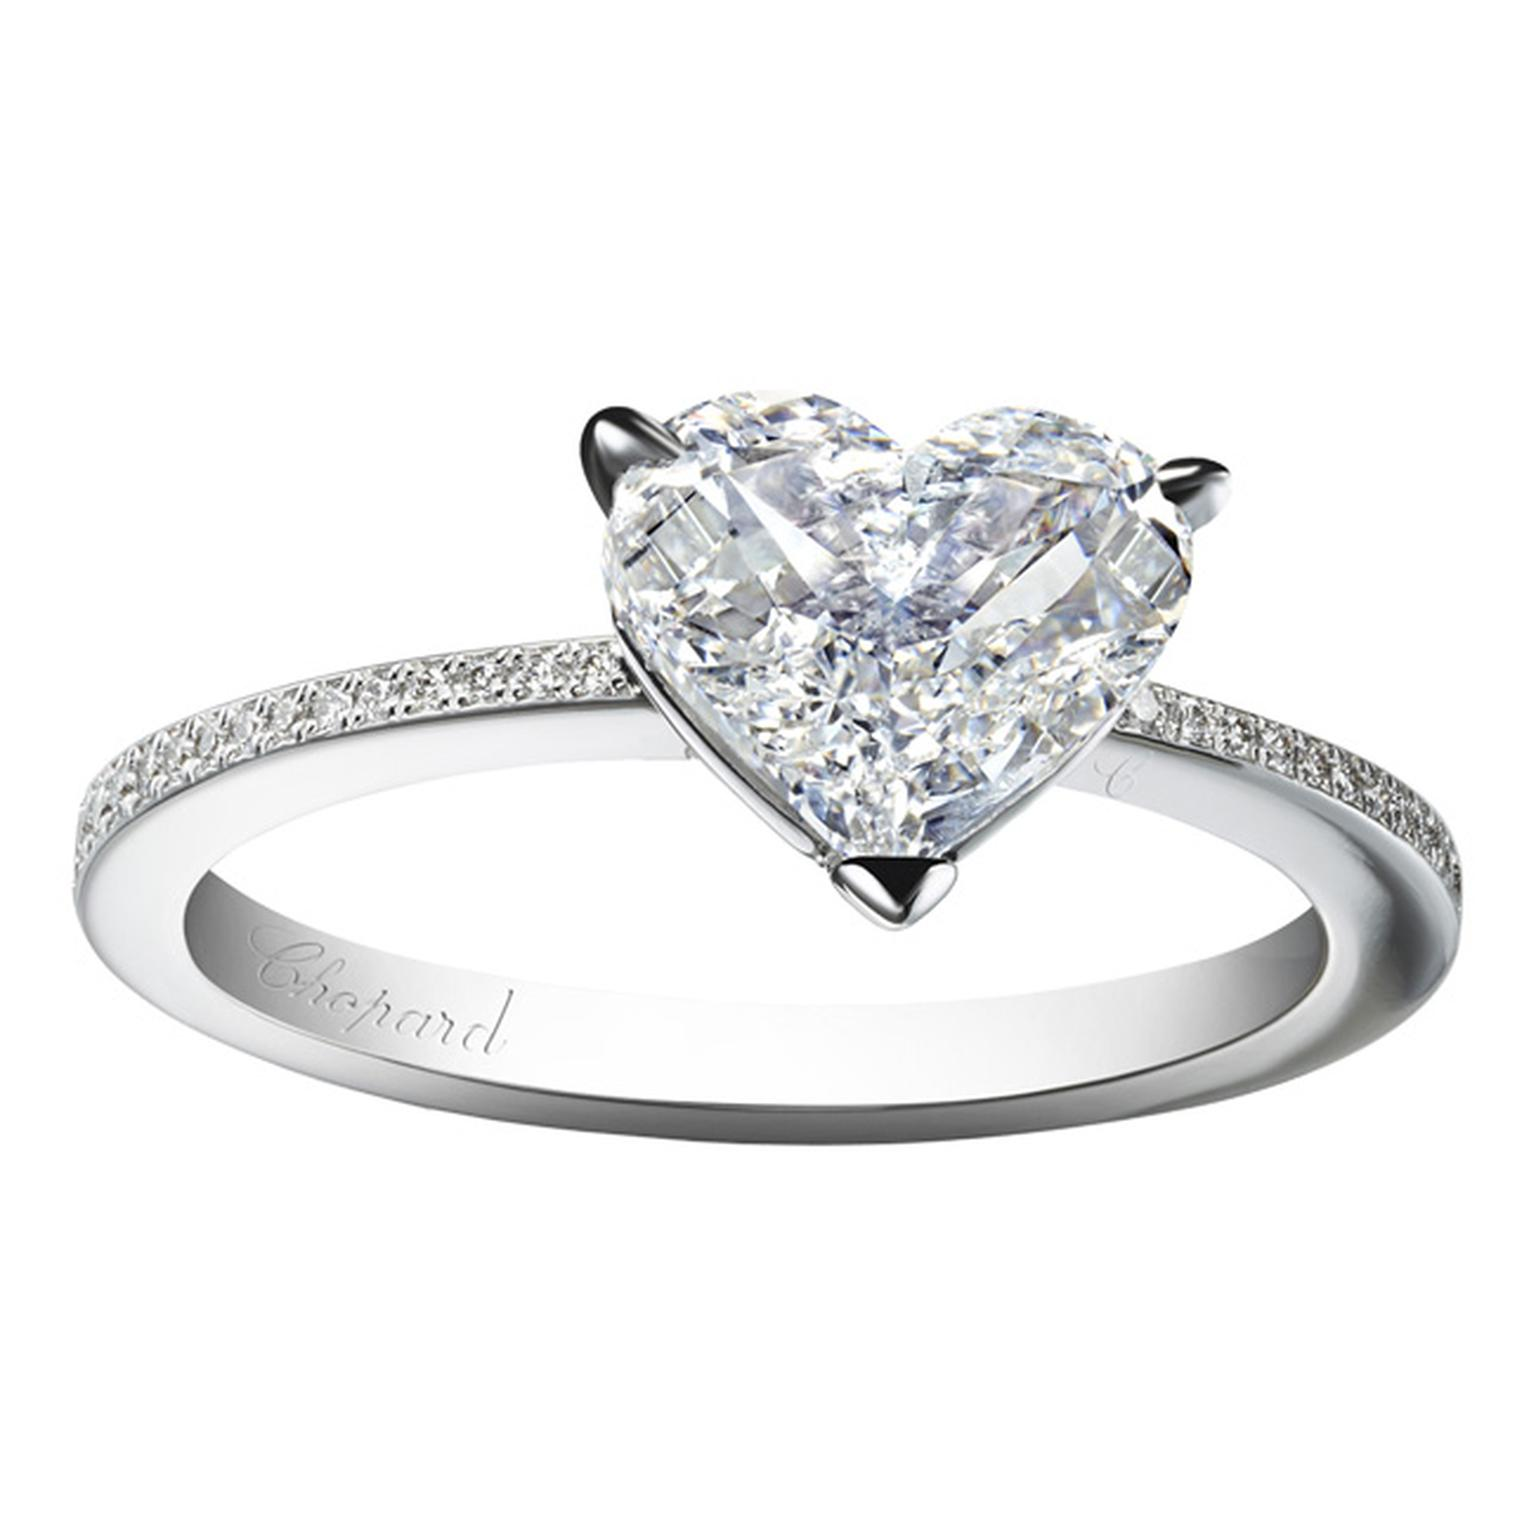 Chopard engagement ring with heart shaped diamond_20131115_Main